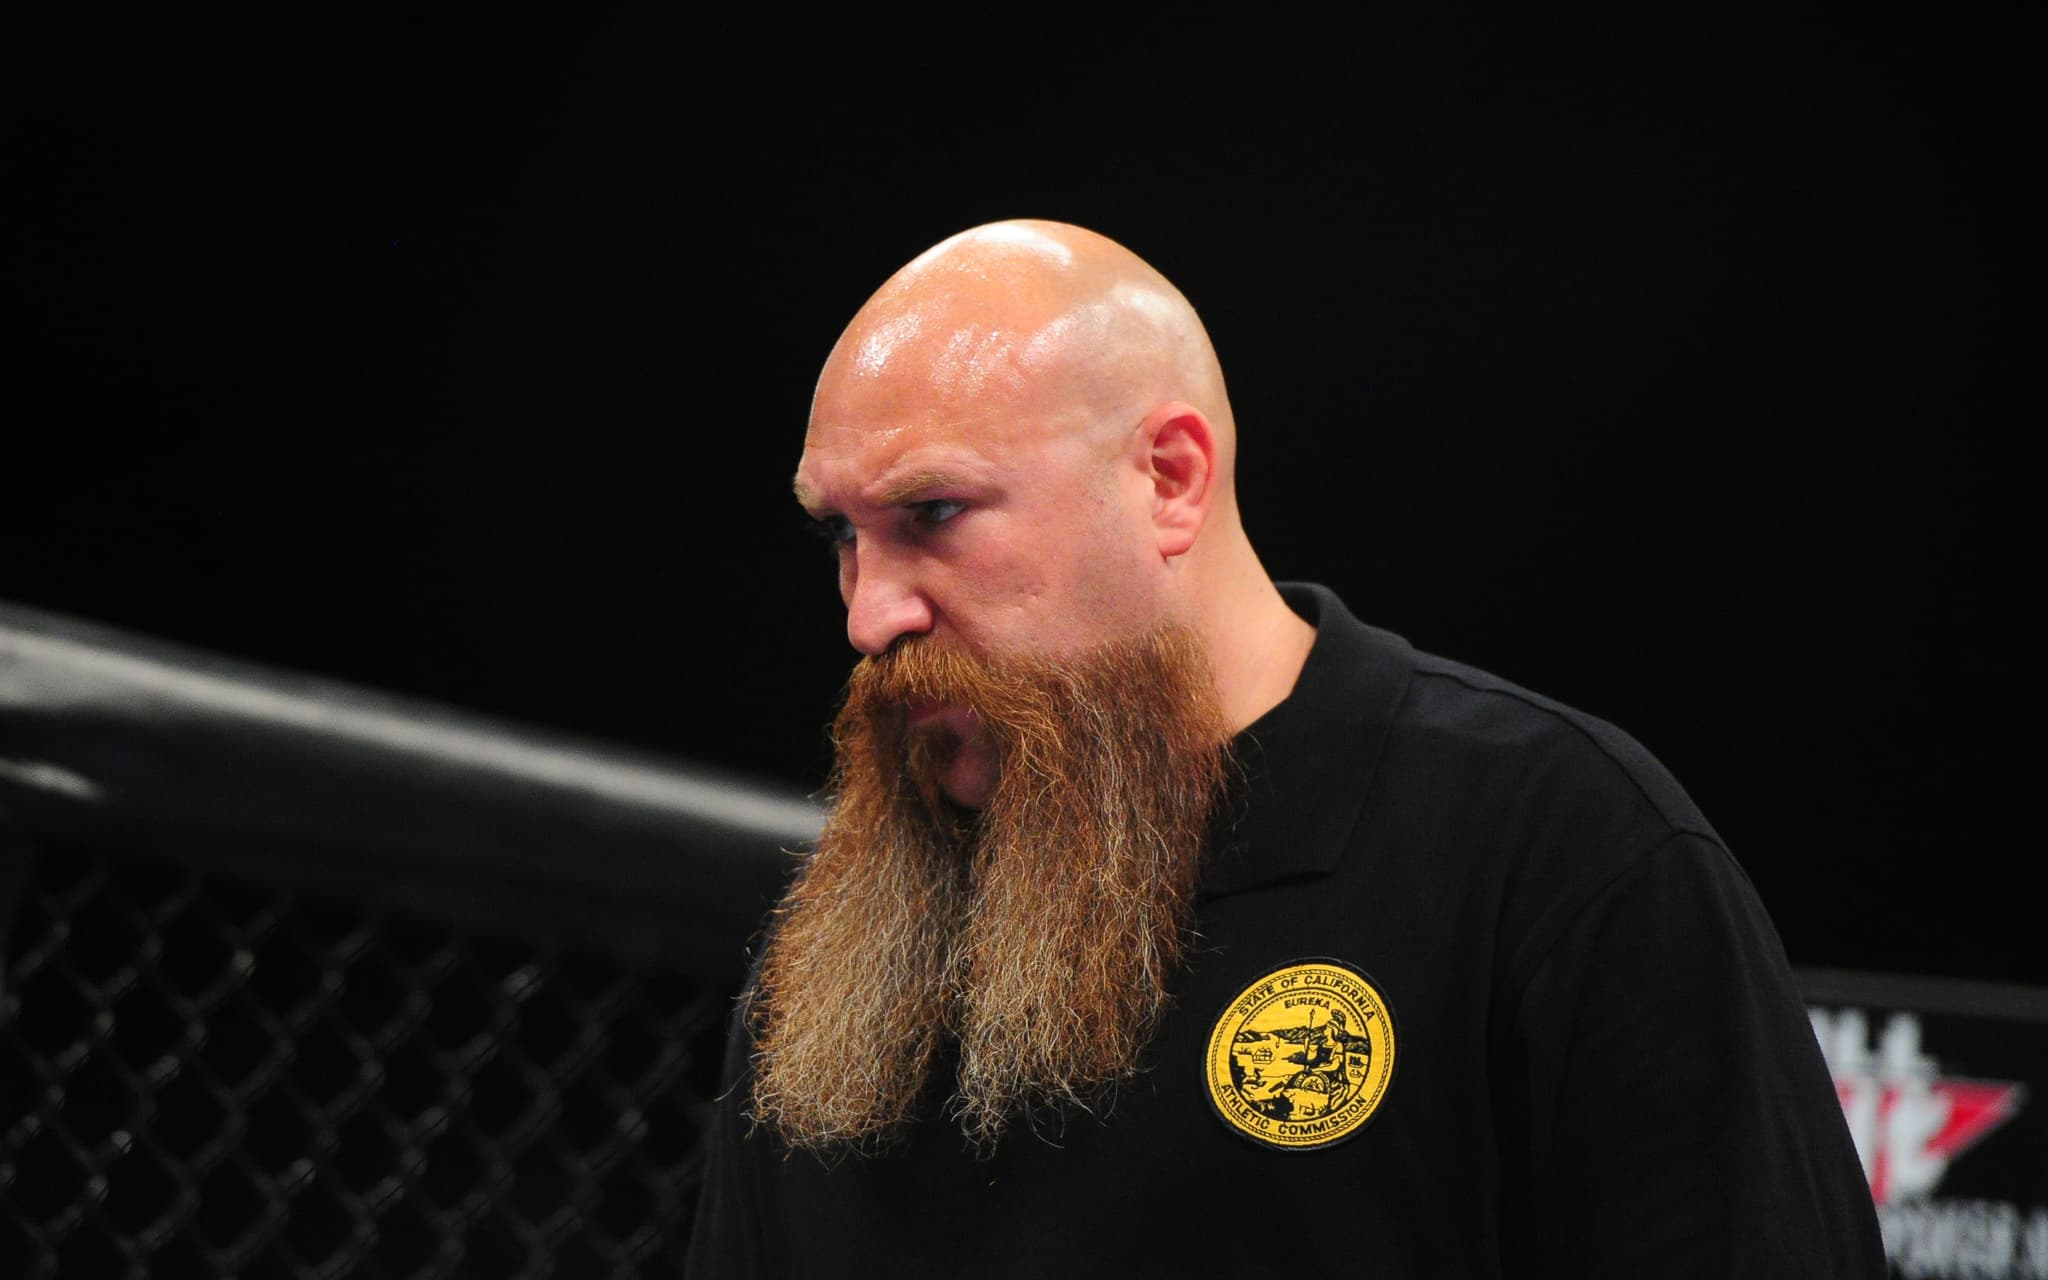 mike beltran beard 1